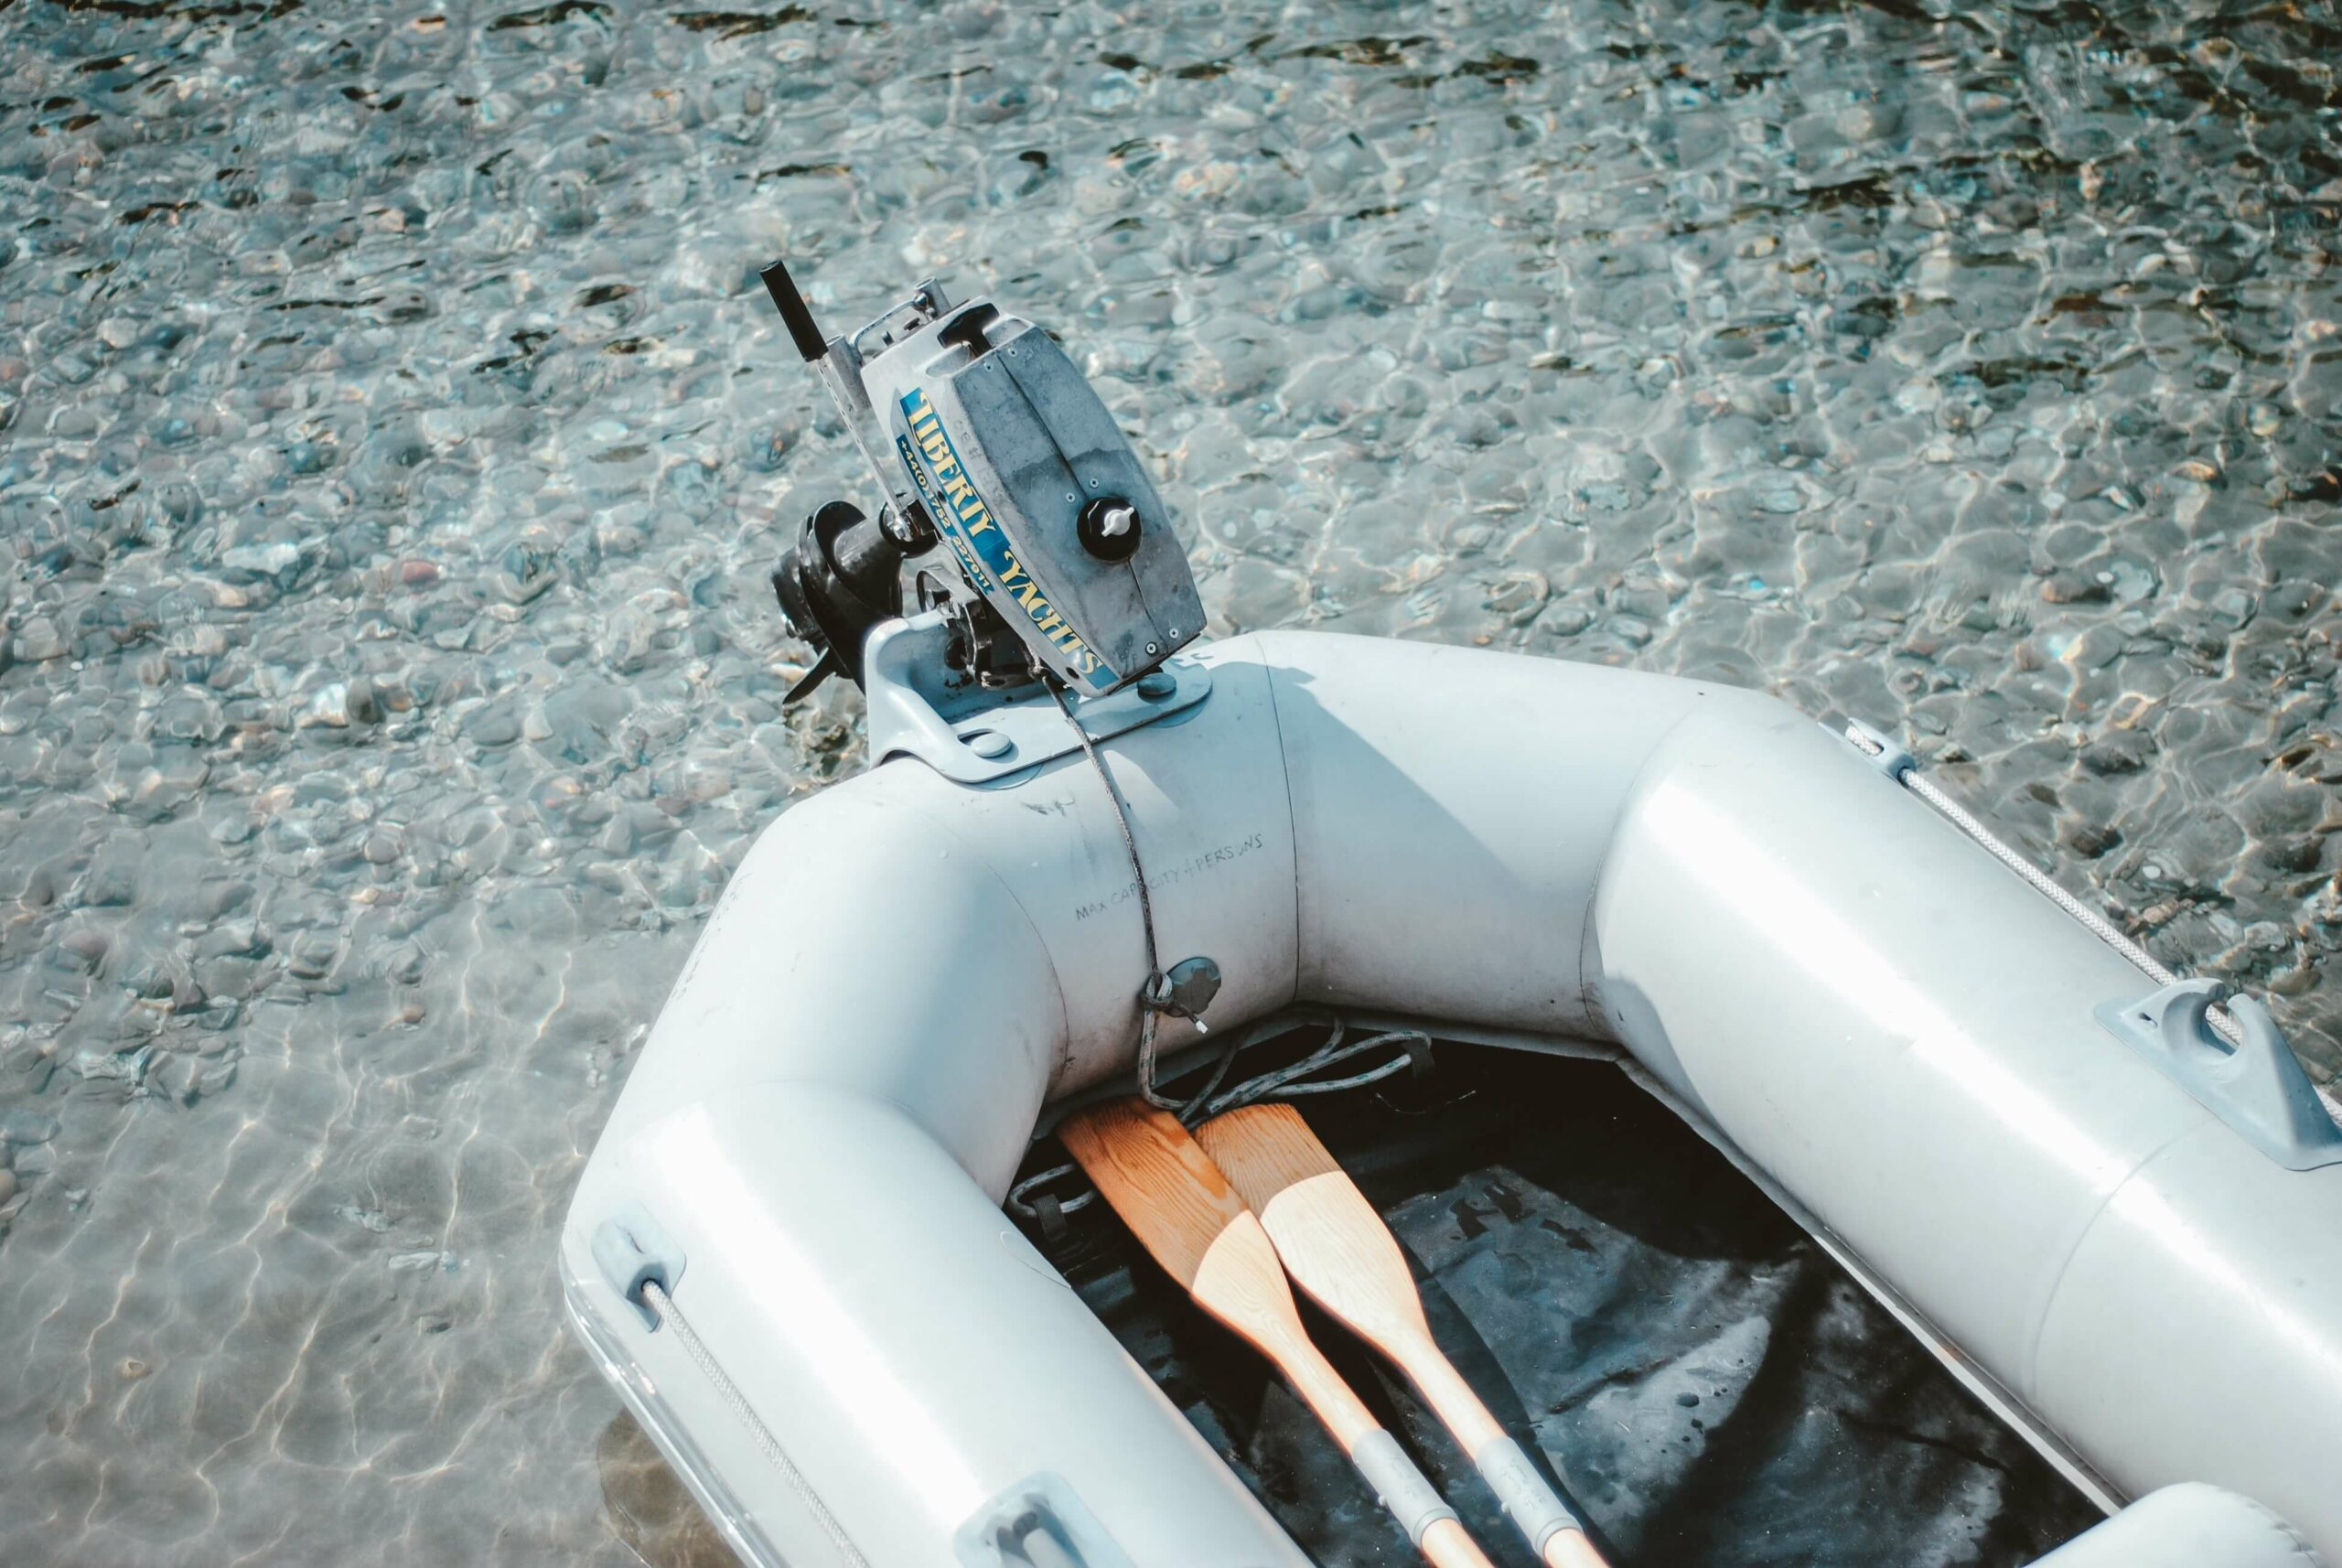 dinghy outboard motor lake